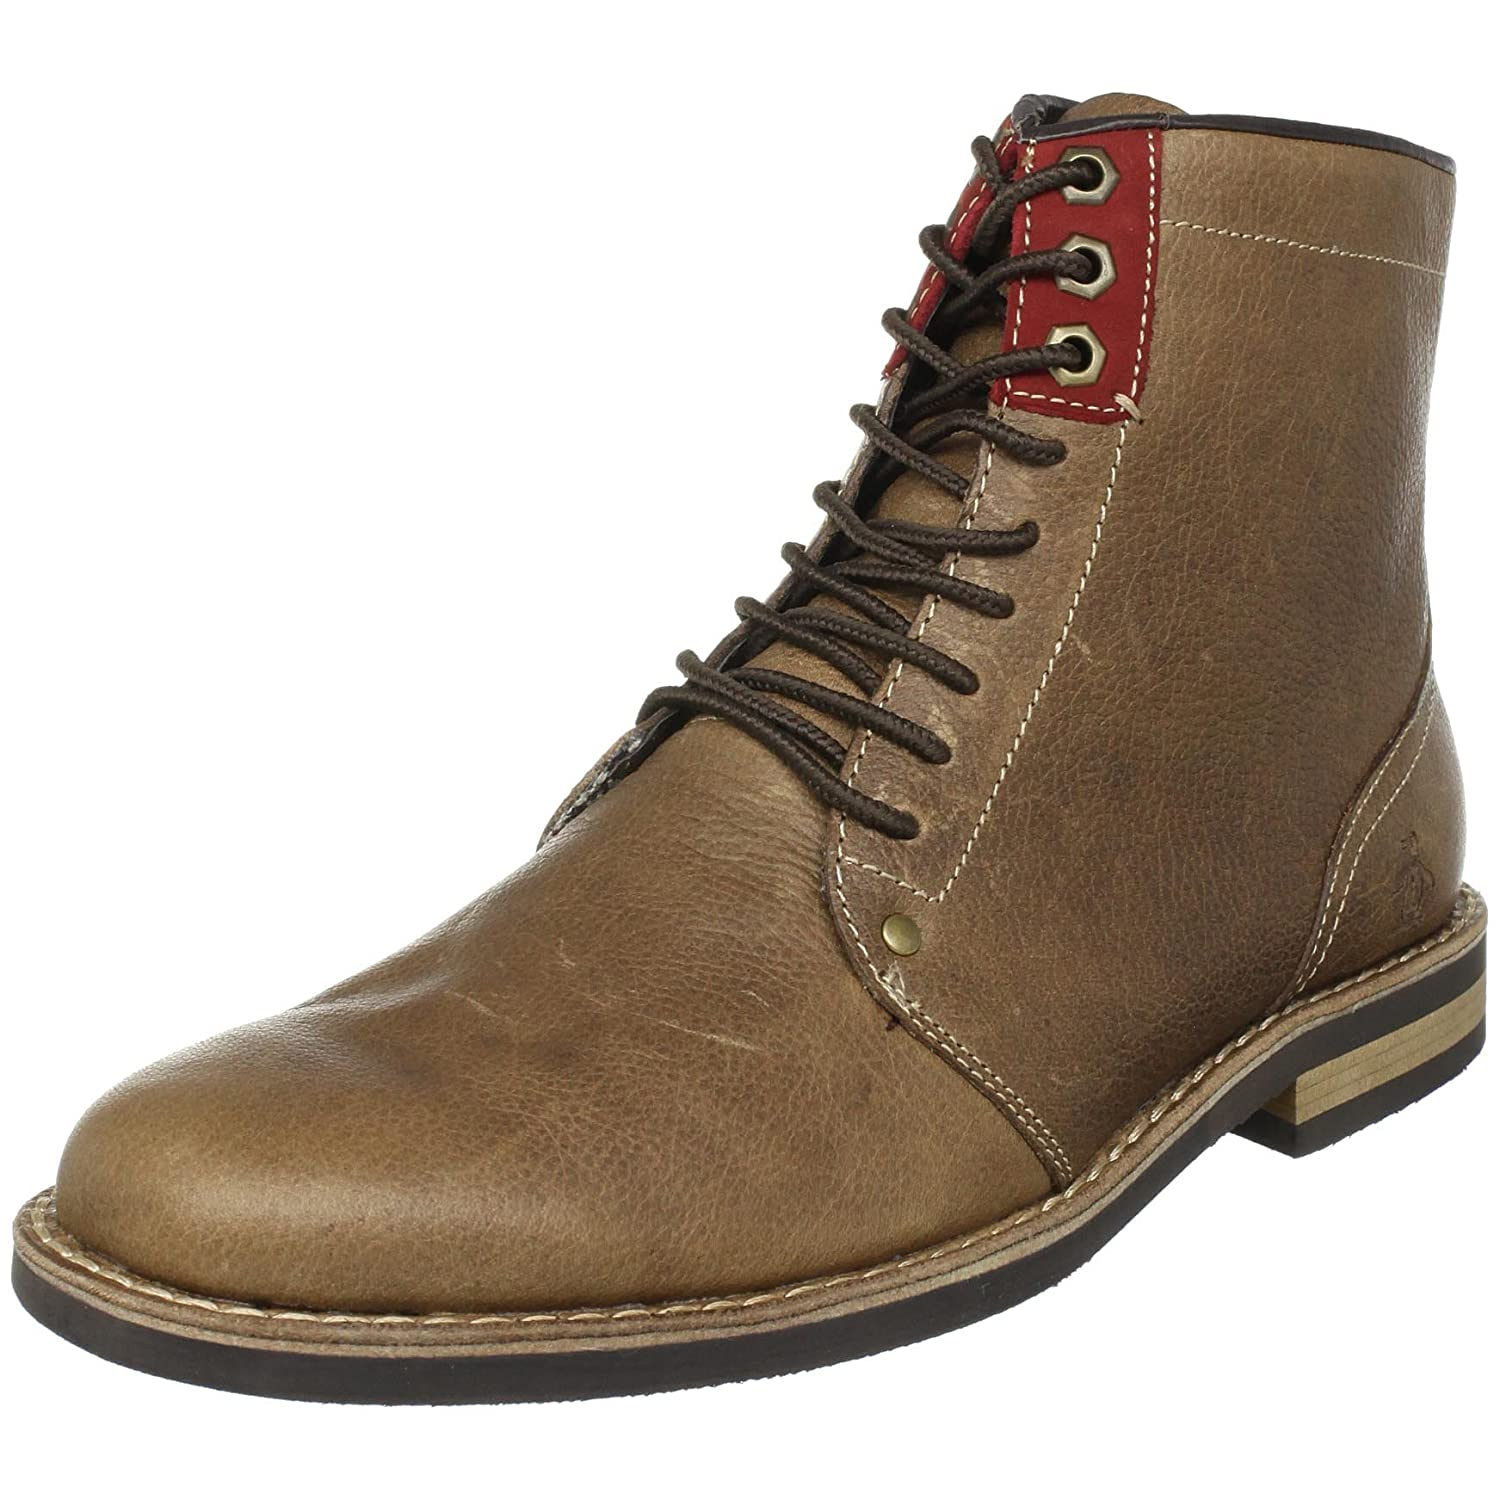 Amazon.com | Original Penguin Mens Jerry Jeff Engineer Boot, Drago, 13 M US | Oxford & Derby